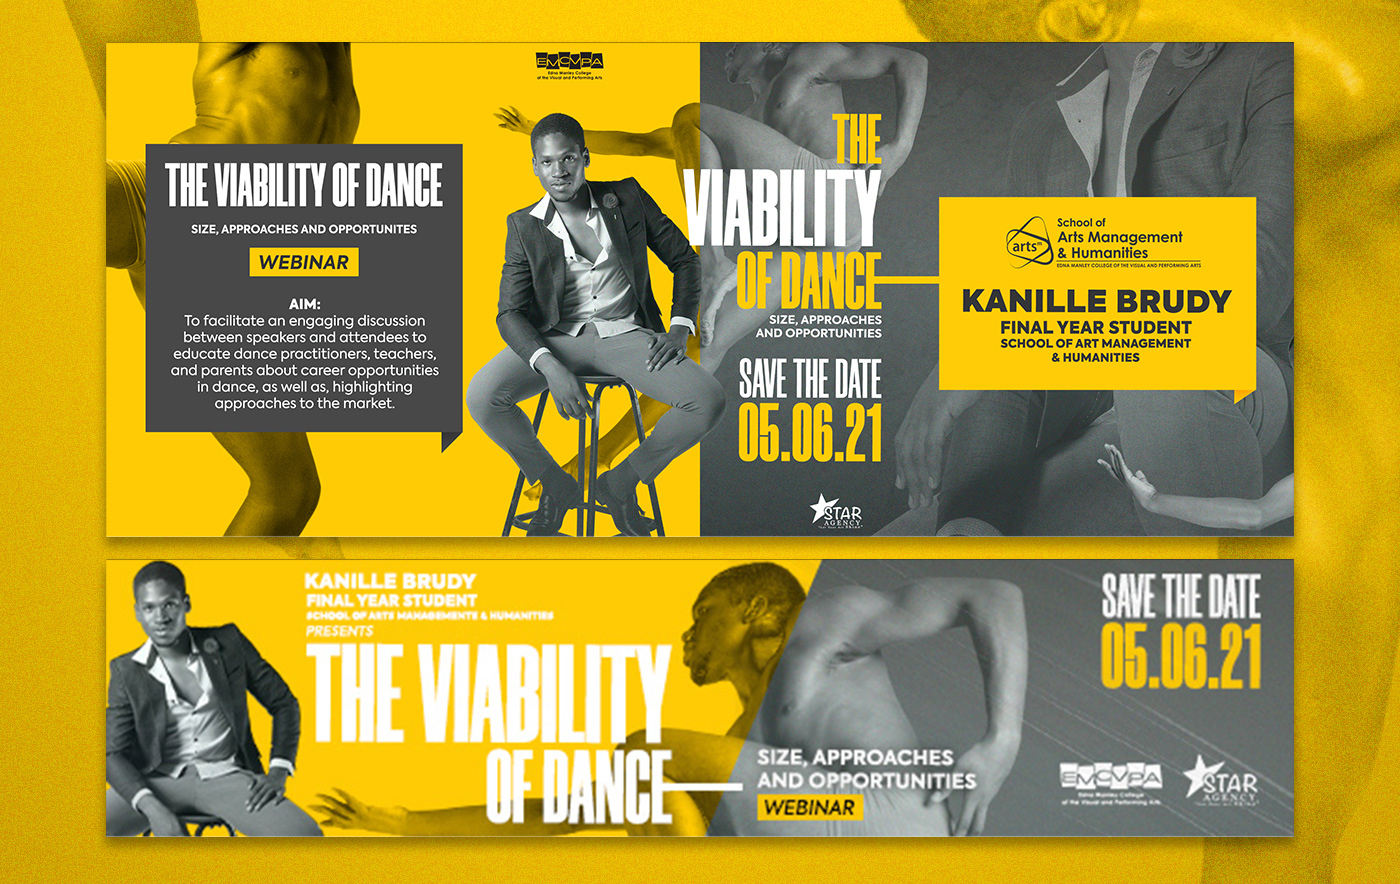 The Viability of Dance promotional artwork designed by Kenneil Smith